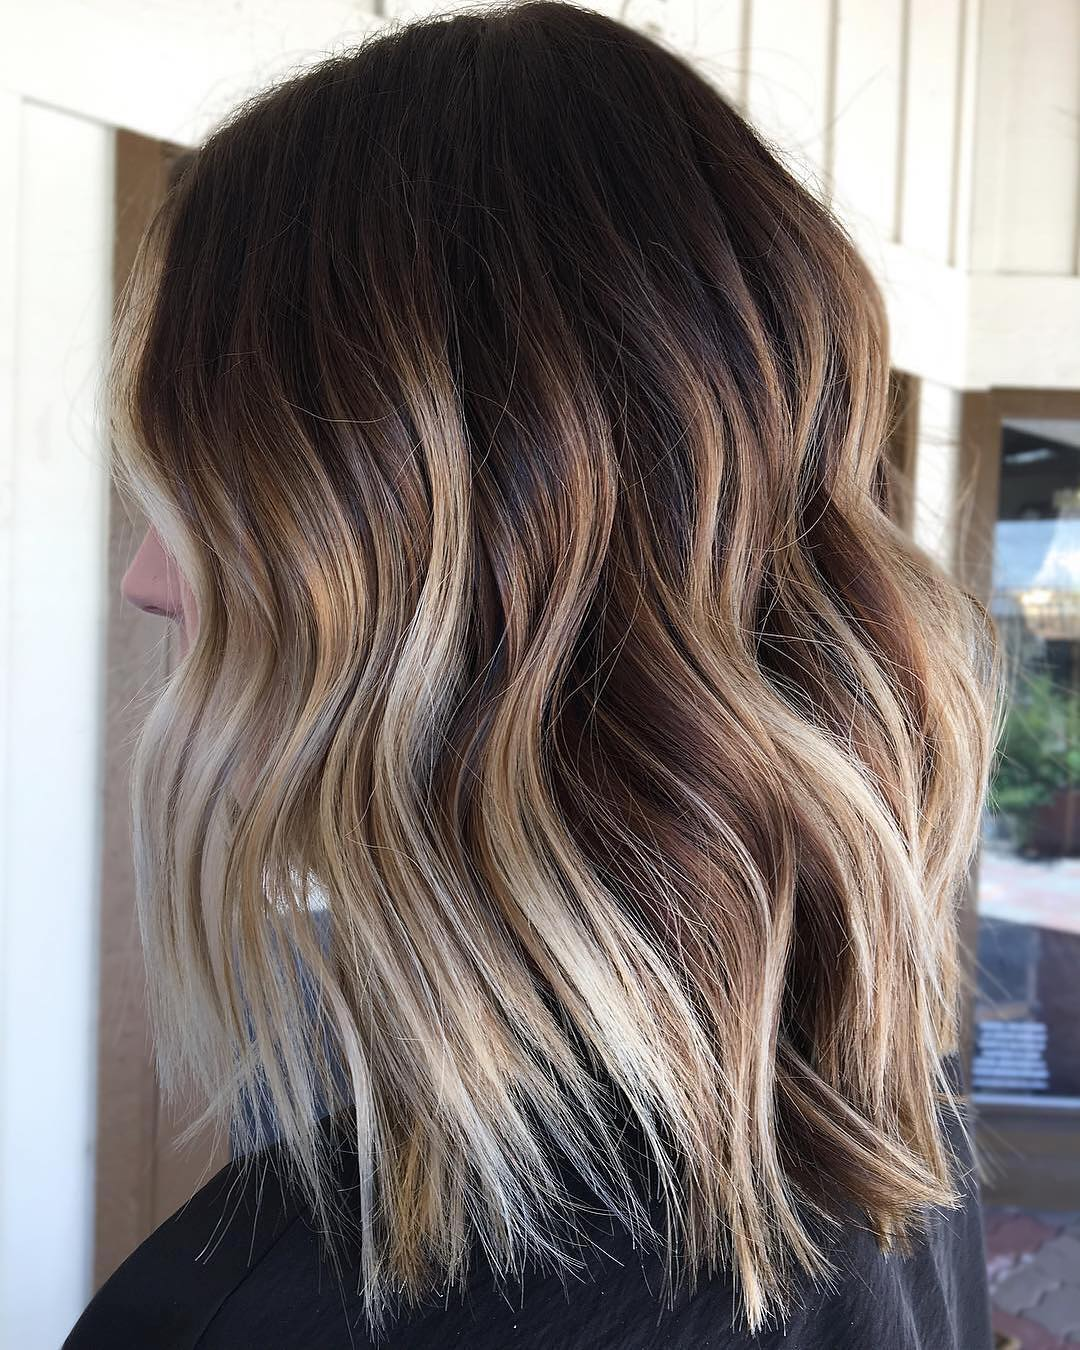 10 Trendy Brown Balayage Hairstyles For Medium Length Hair 2020